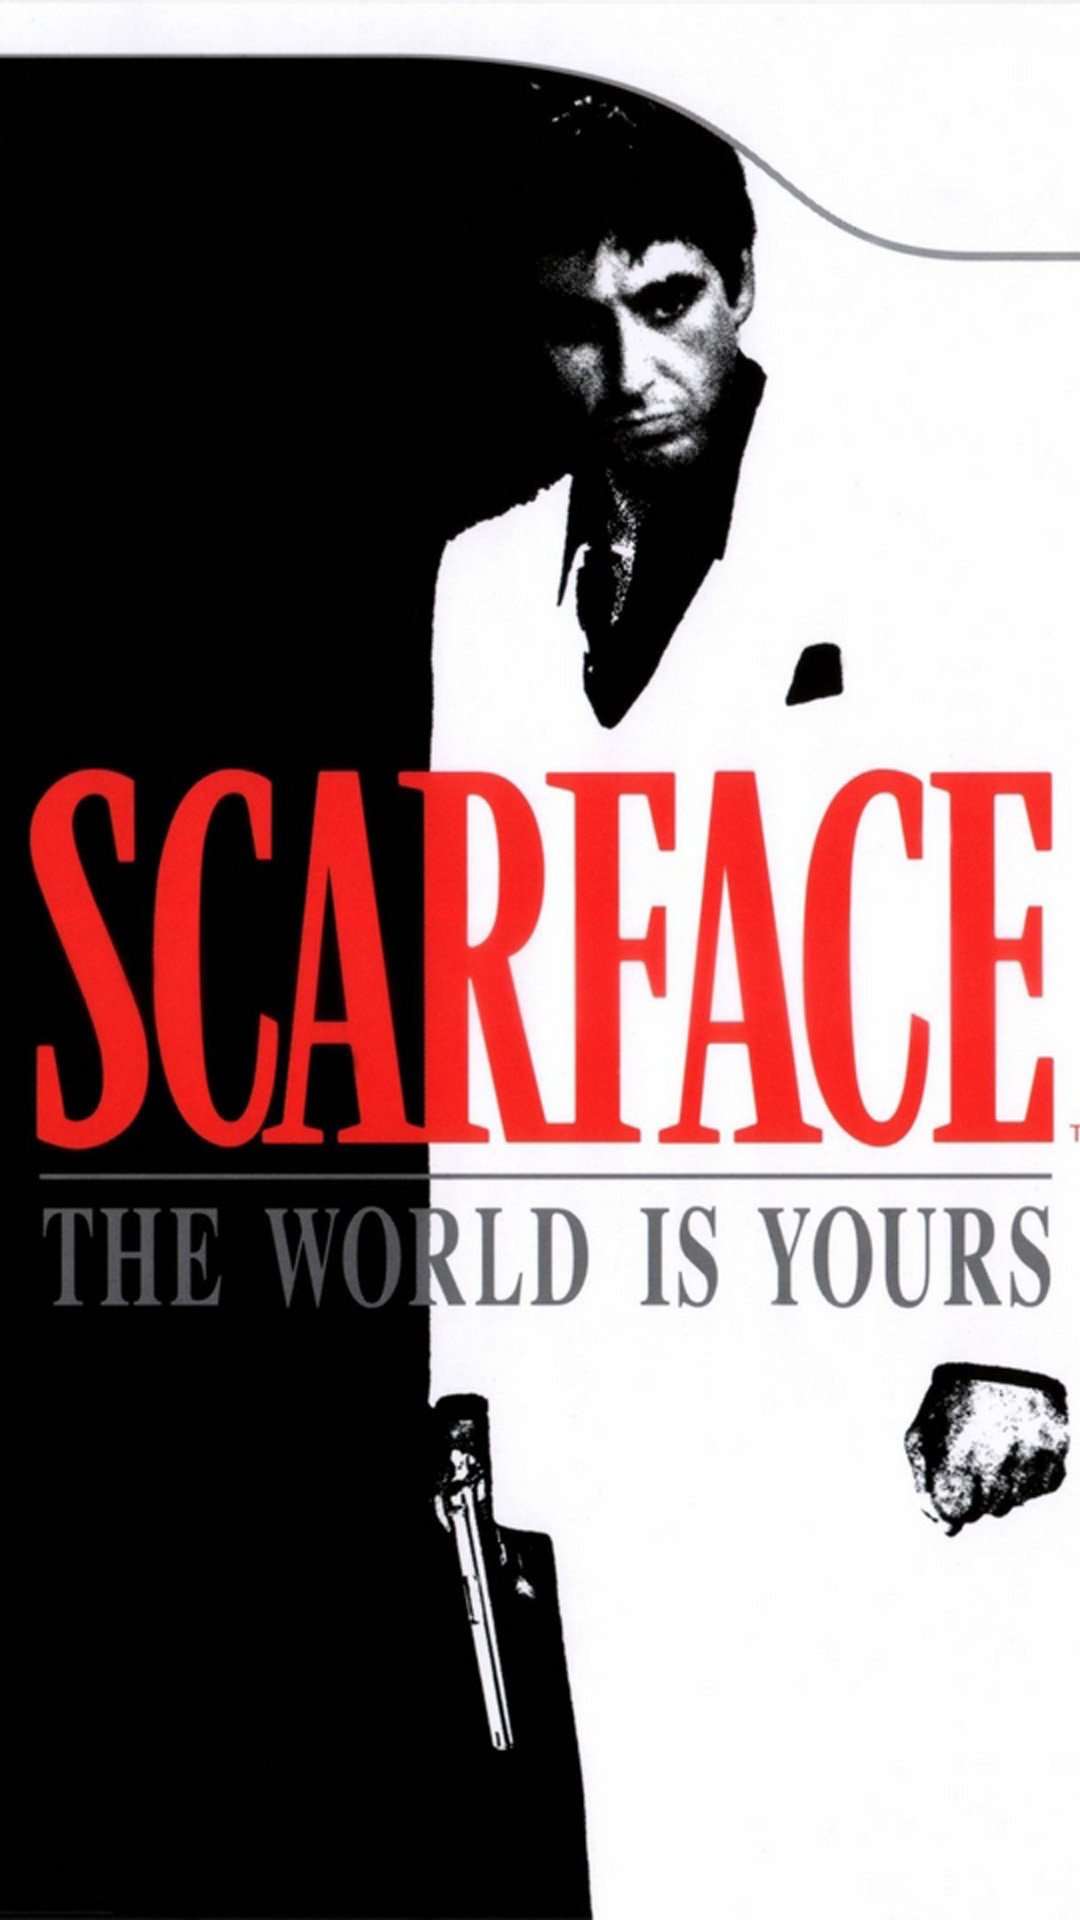 2048x1536 Scarface Images Al HD Wallpaper And Background Photos